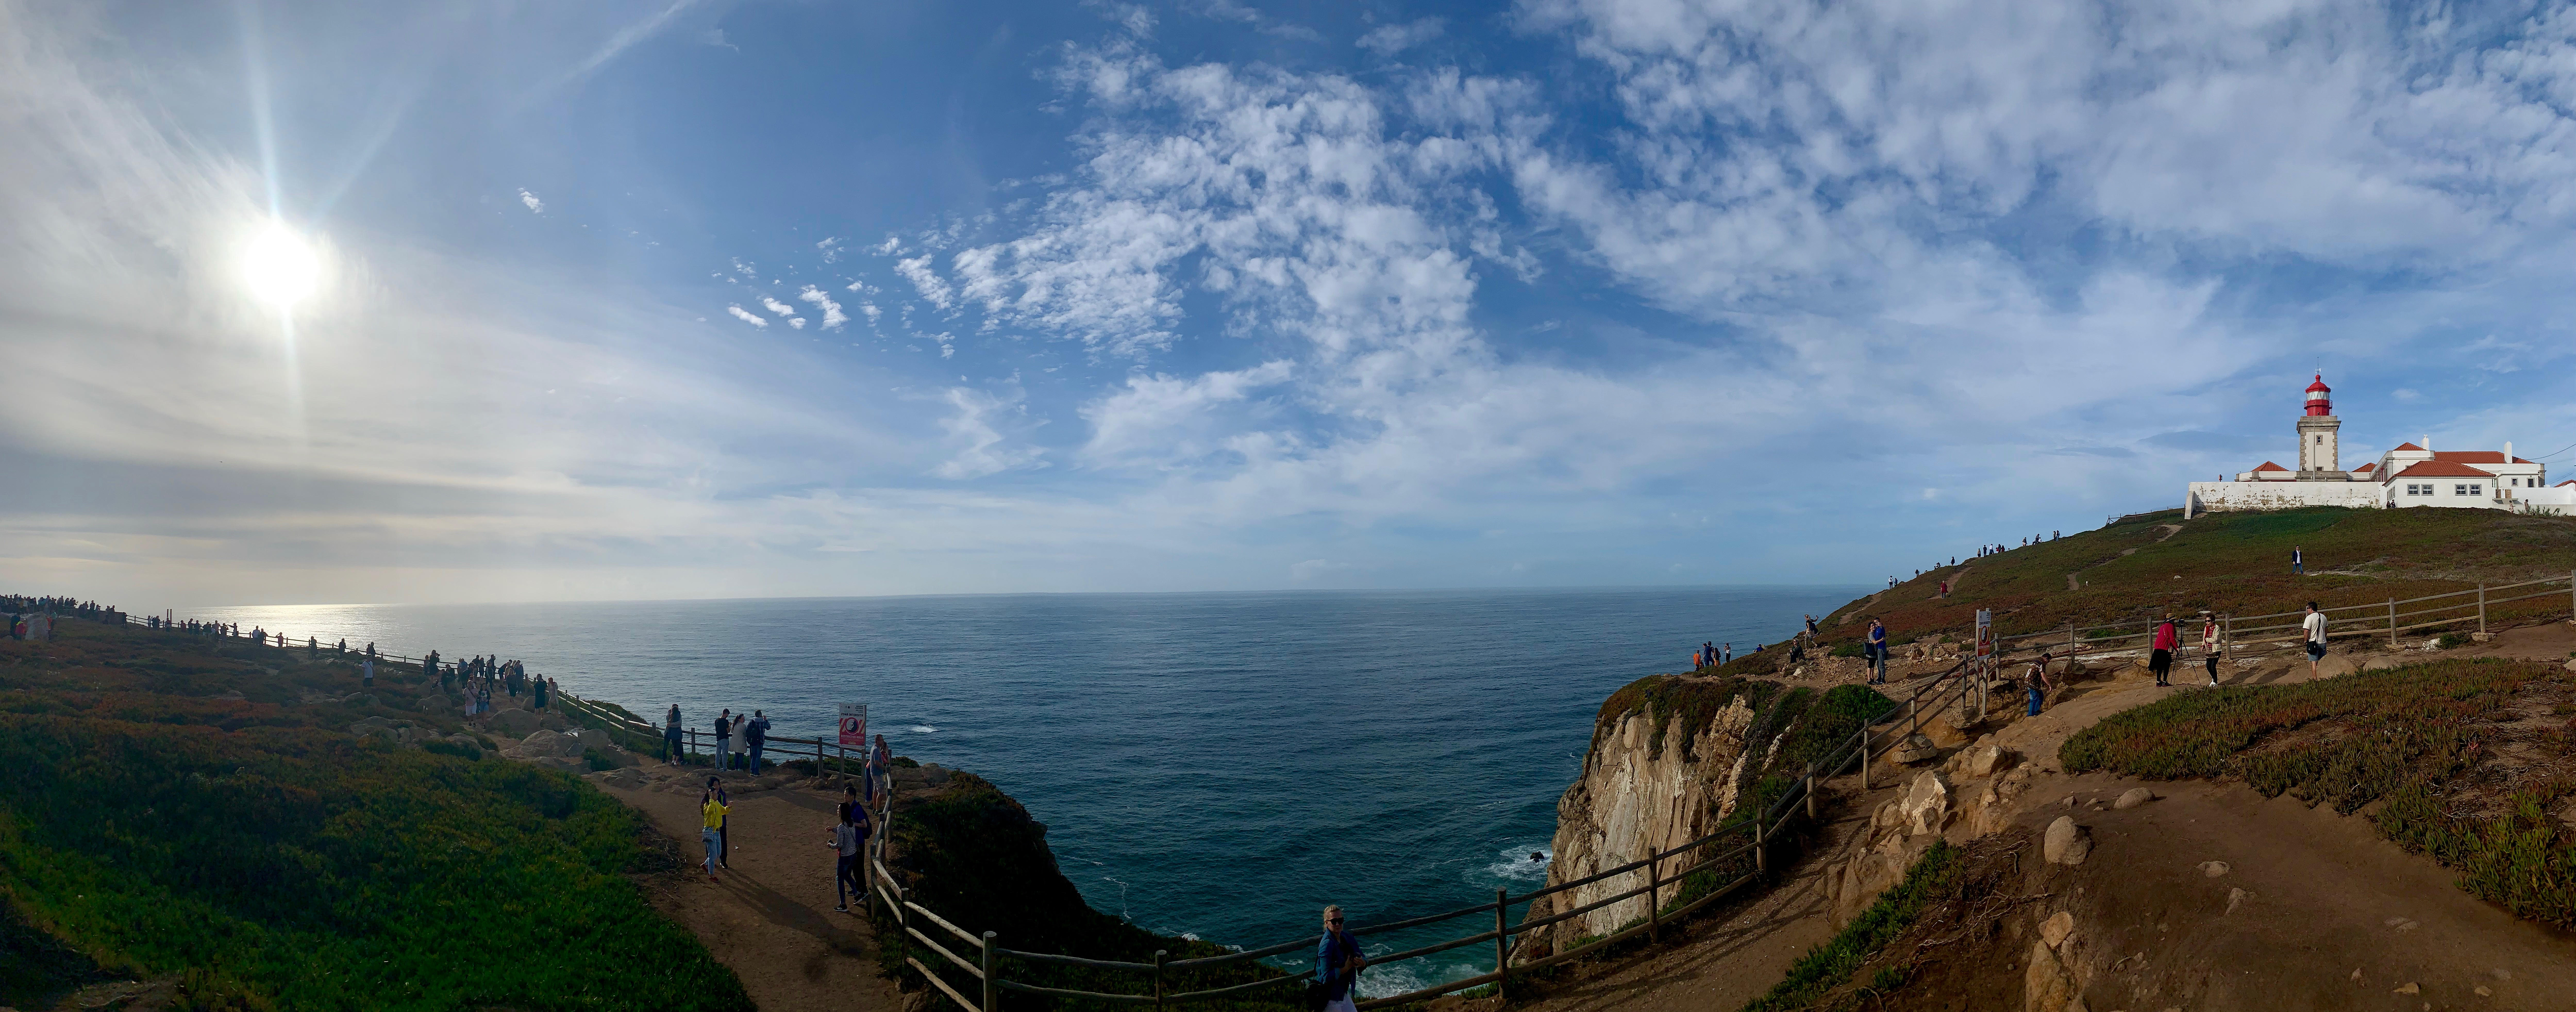 cabo da roca panoramic view